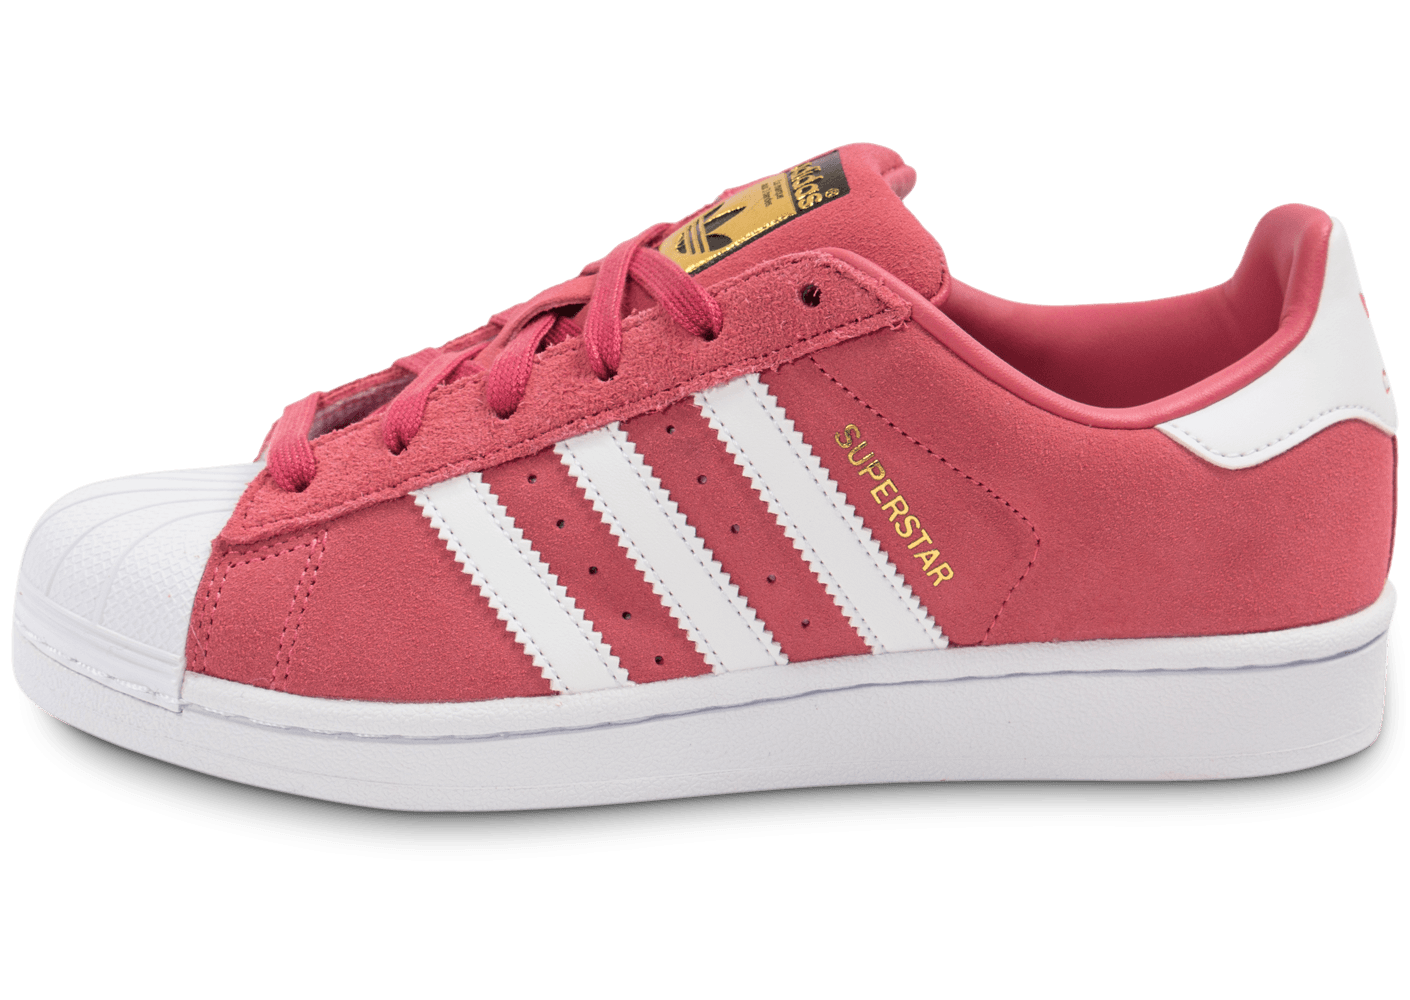 Superstar Pale Daim Rose Adidas Adidas Superstar DIWE92YH